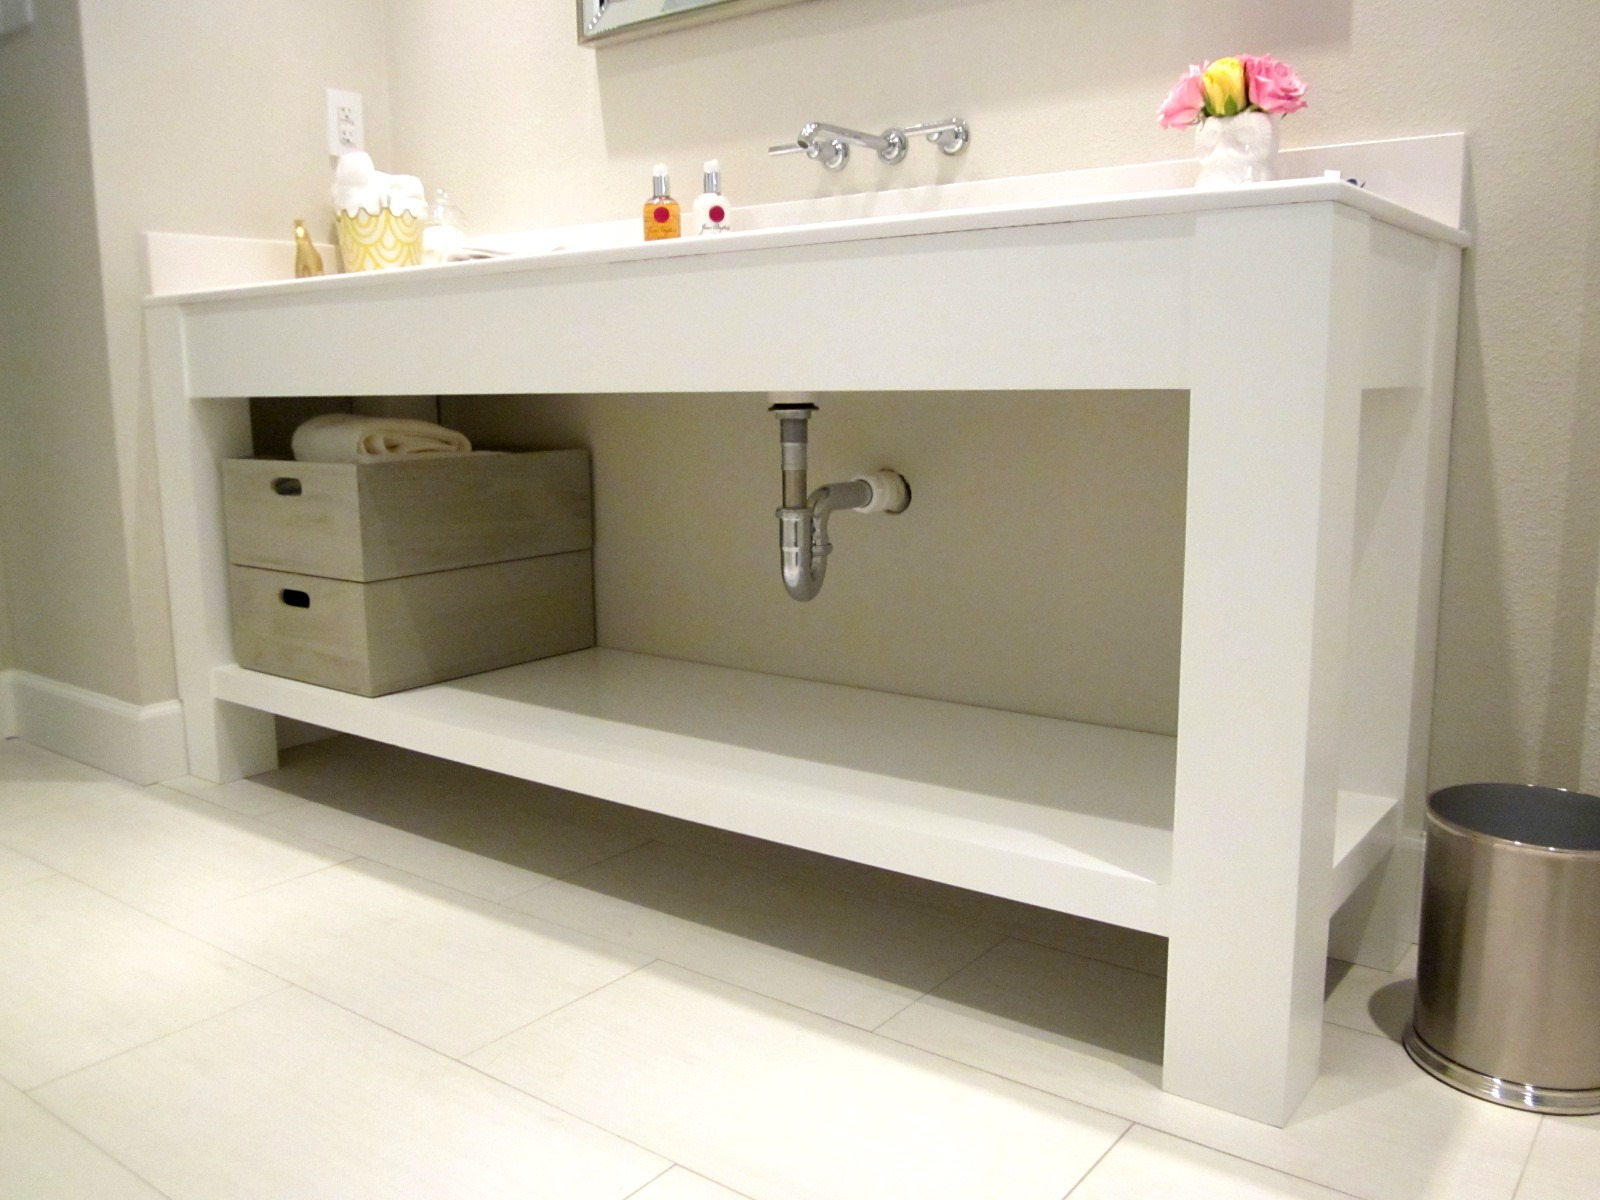 Jared meadors custom cabinets houston bath vanity console open contemporary painted white Bathroom vanities houston tx